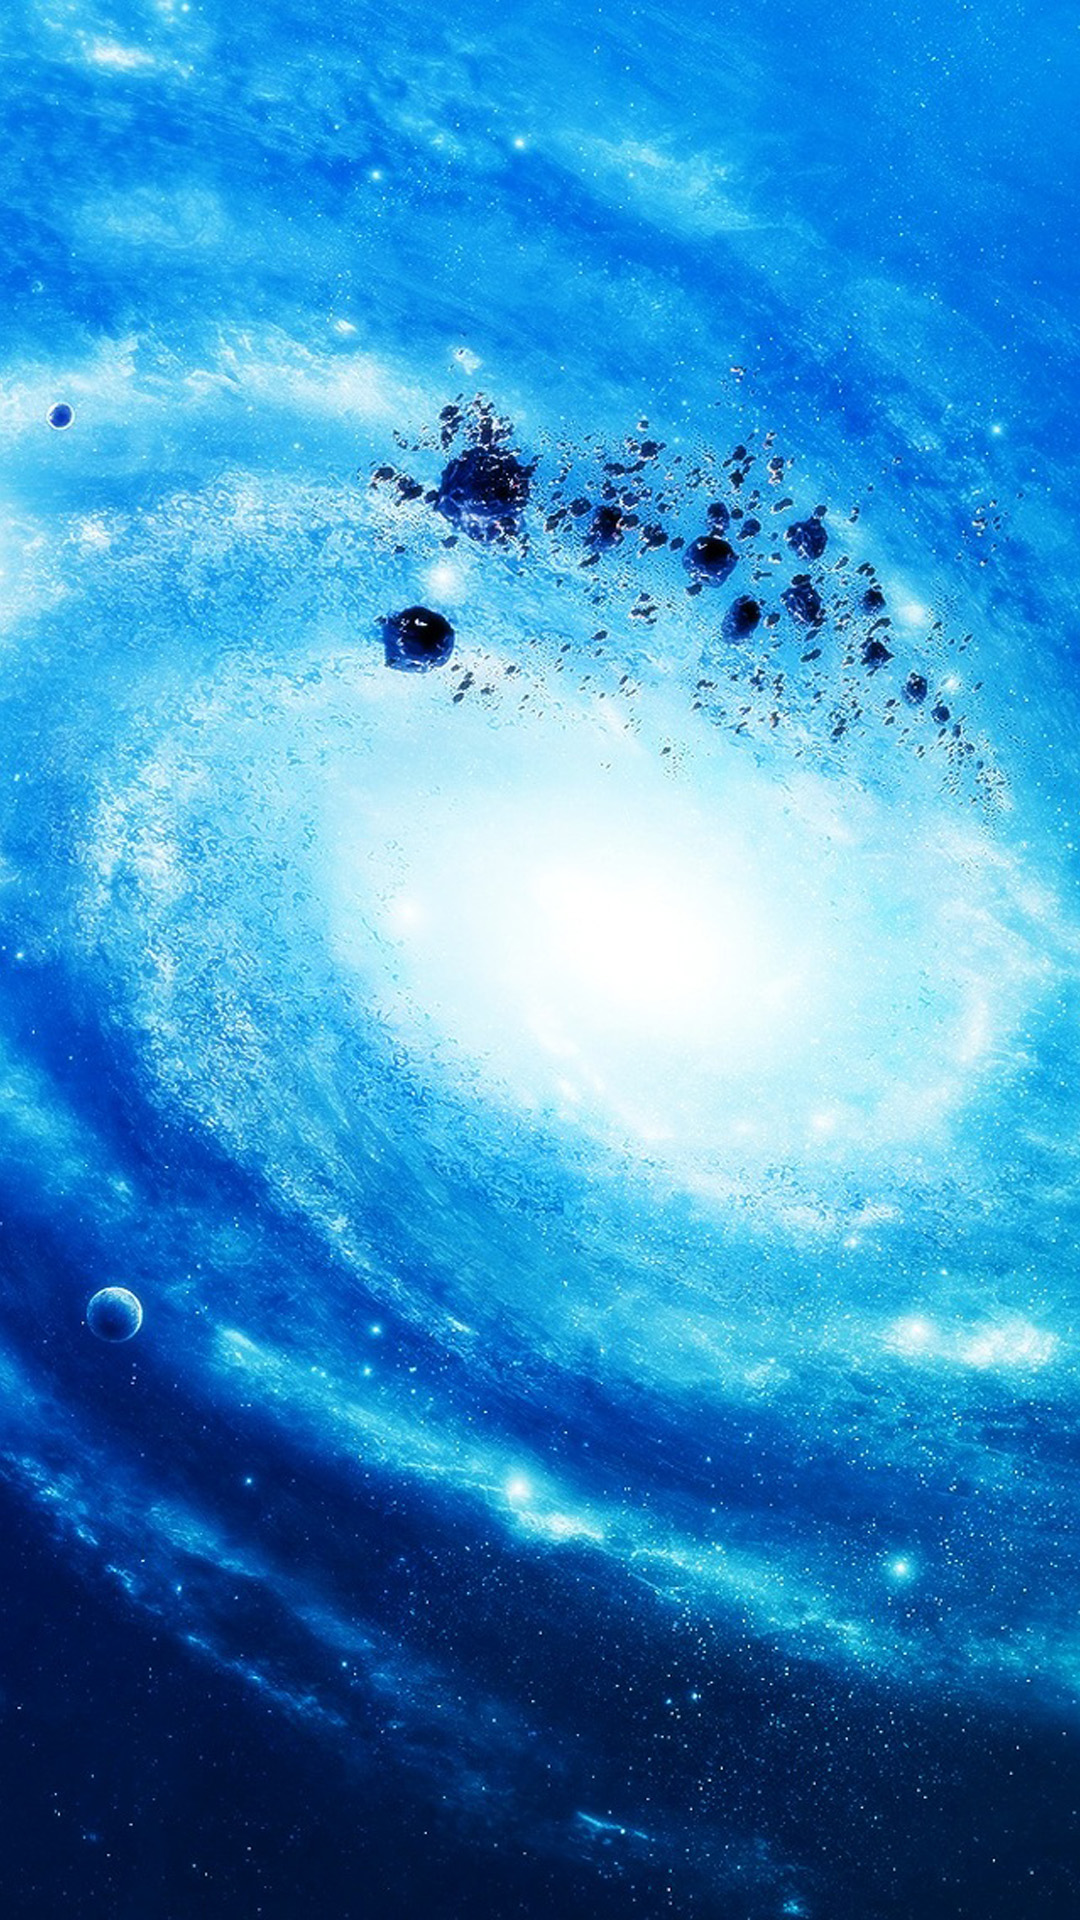 Blue Galaxy Wallpaper Iphone 7, Hd Wallpapers and backgrounds